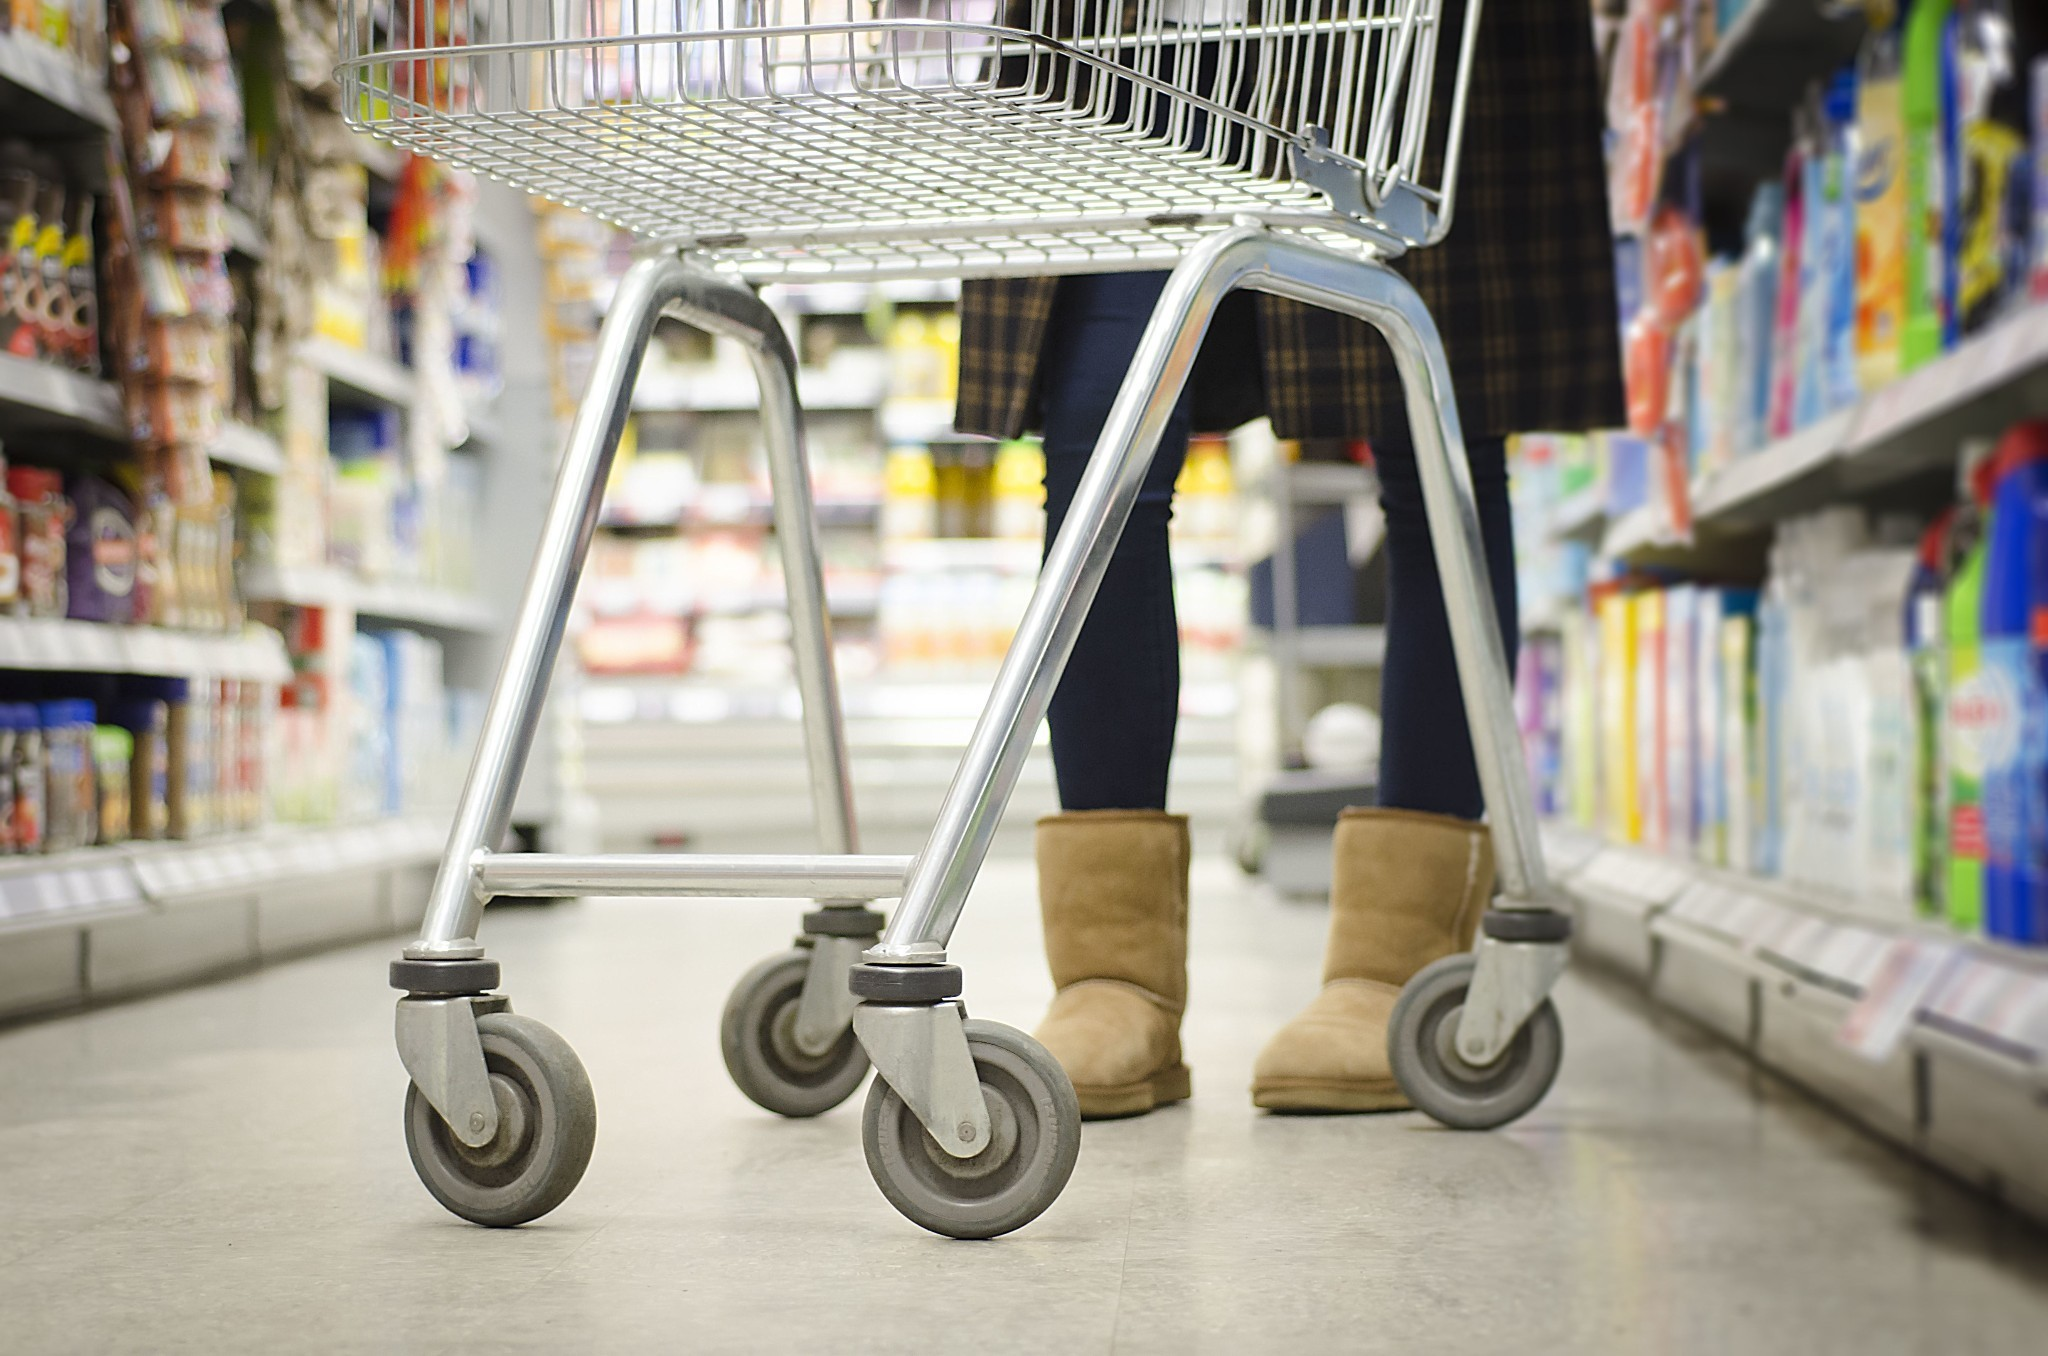 Grocery shopping might be less painful with this smart cart